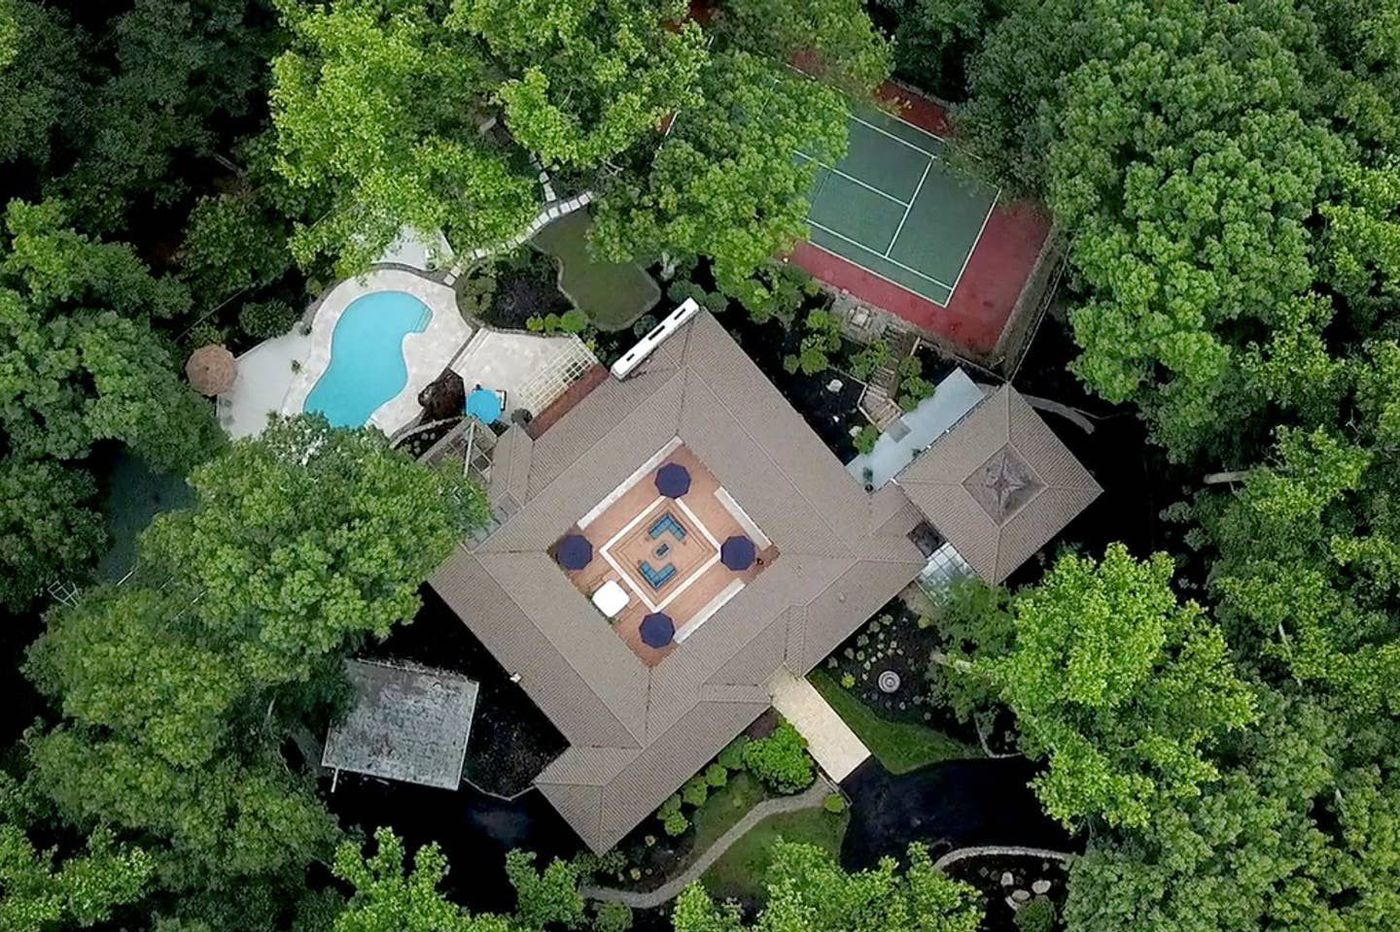 'Wild parties' at Muhammad Ali's former N.J. mansion-turned-Airbnb are irritating the neighbors